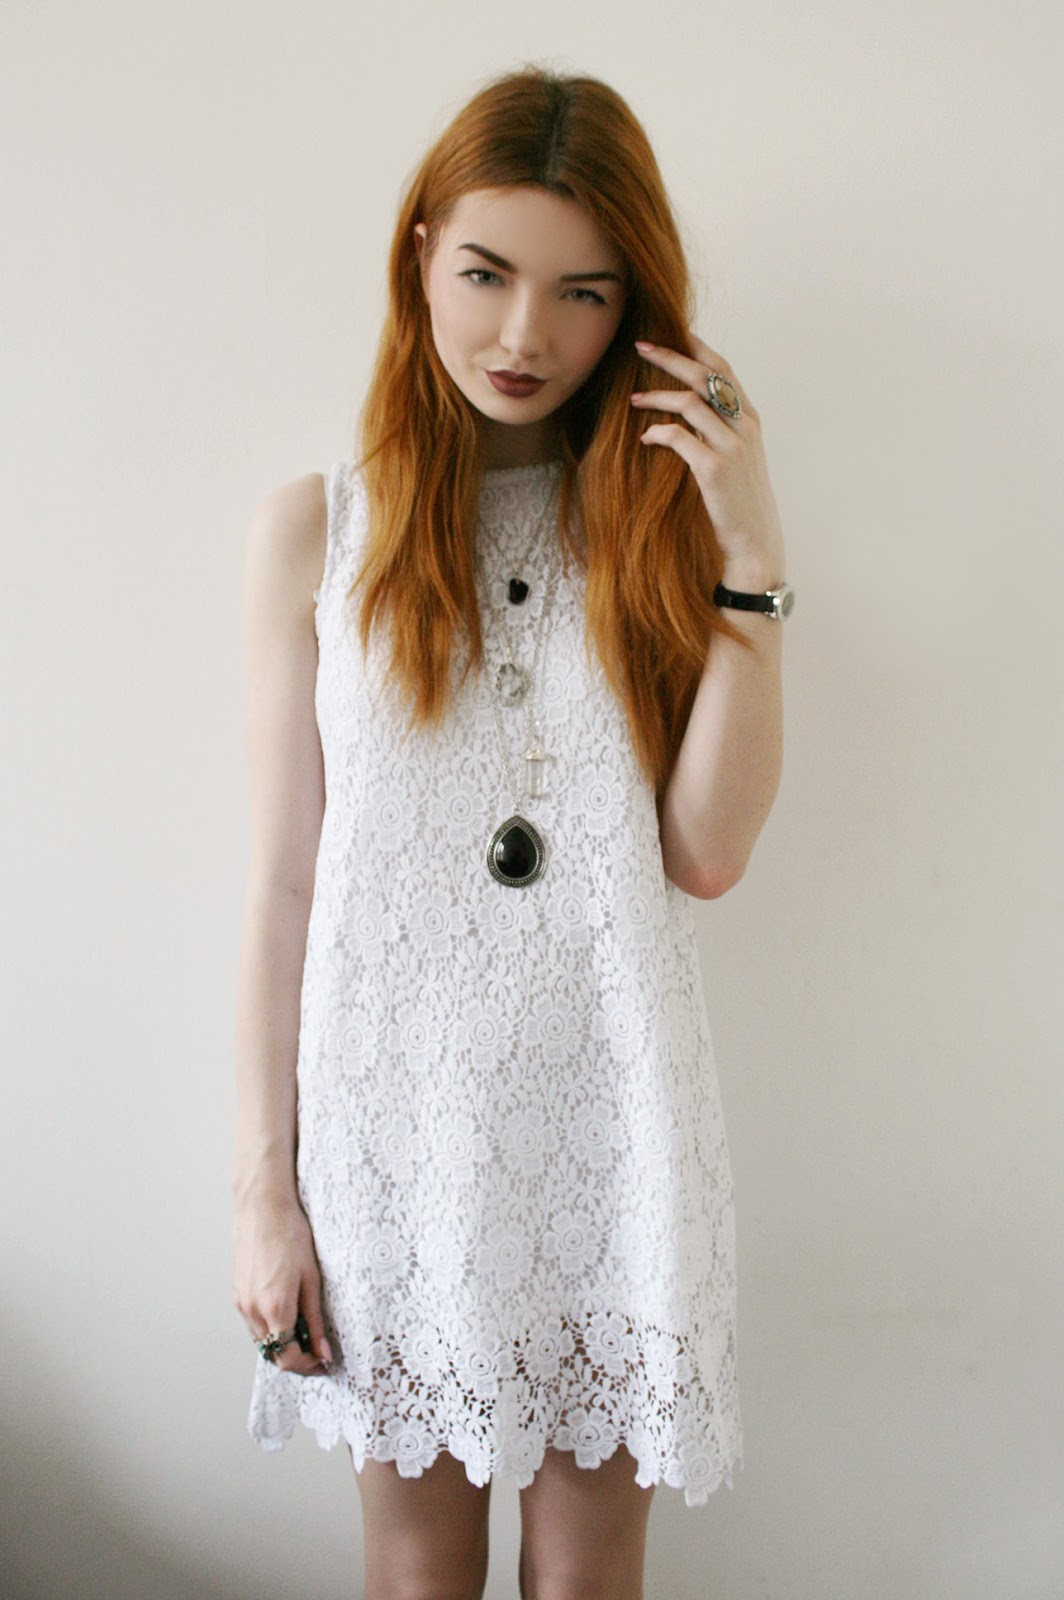 White Crochet Dress Unique Outfit the Day Of Adorable 49 Pics White Crochet Dress